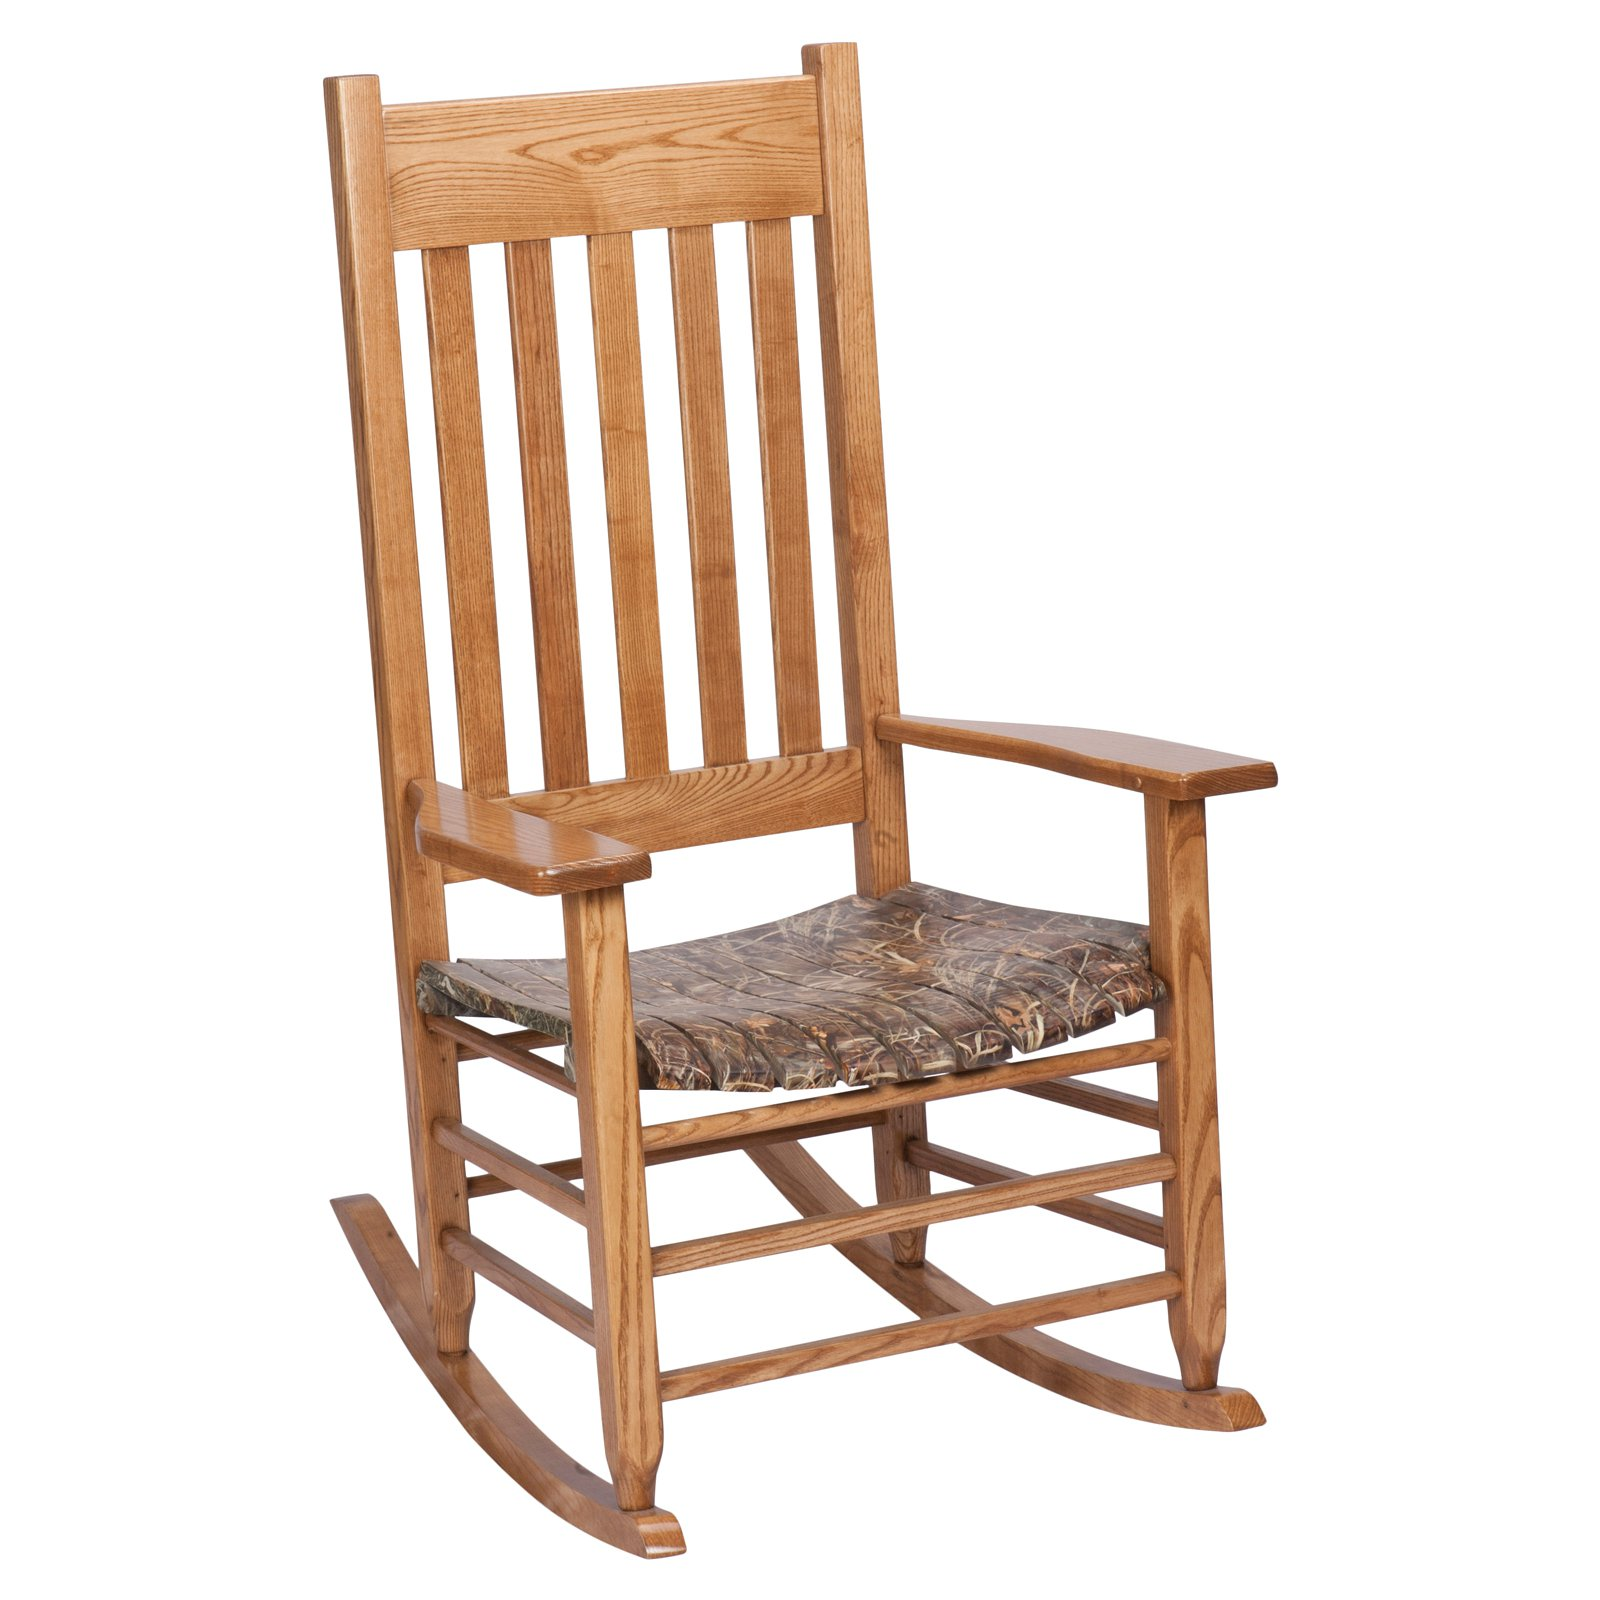 Hinkle Chair Company RealTree Rocking Chair